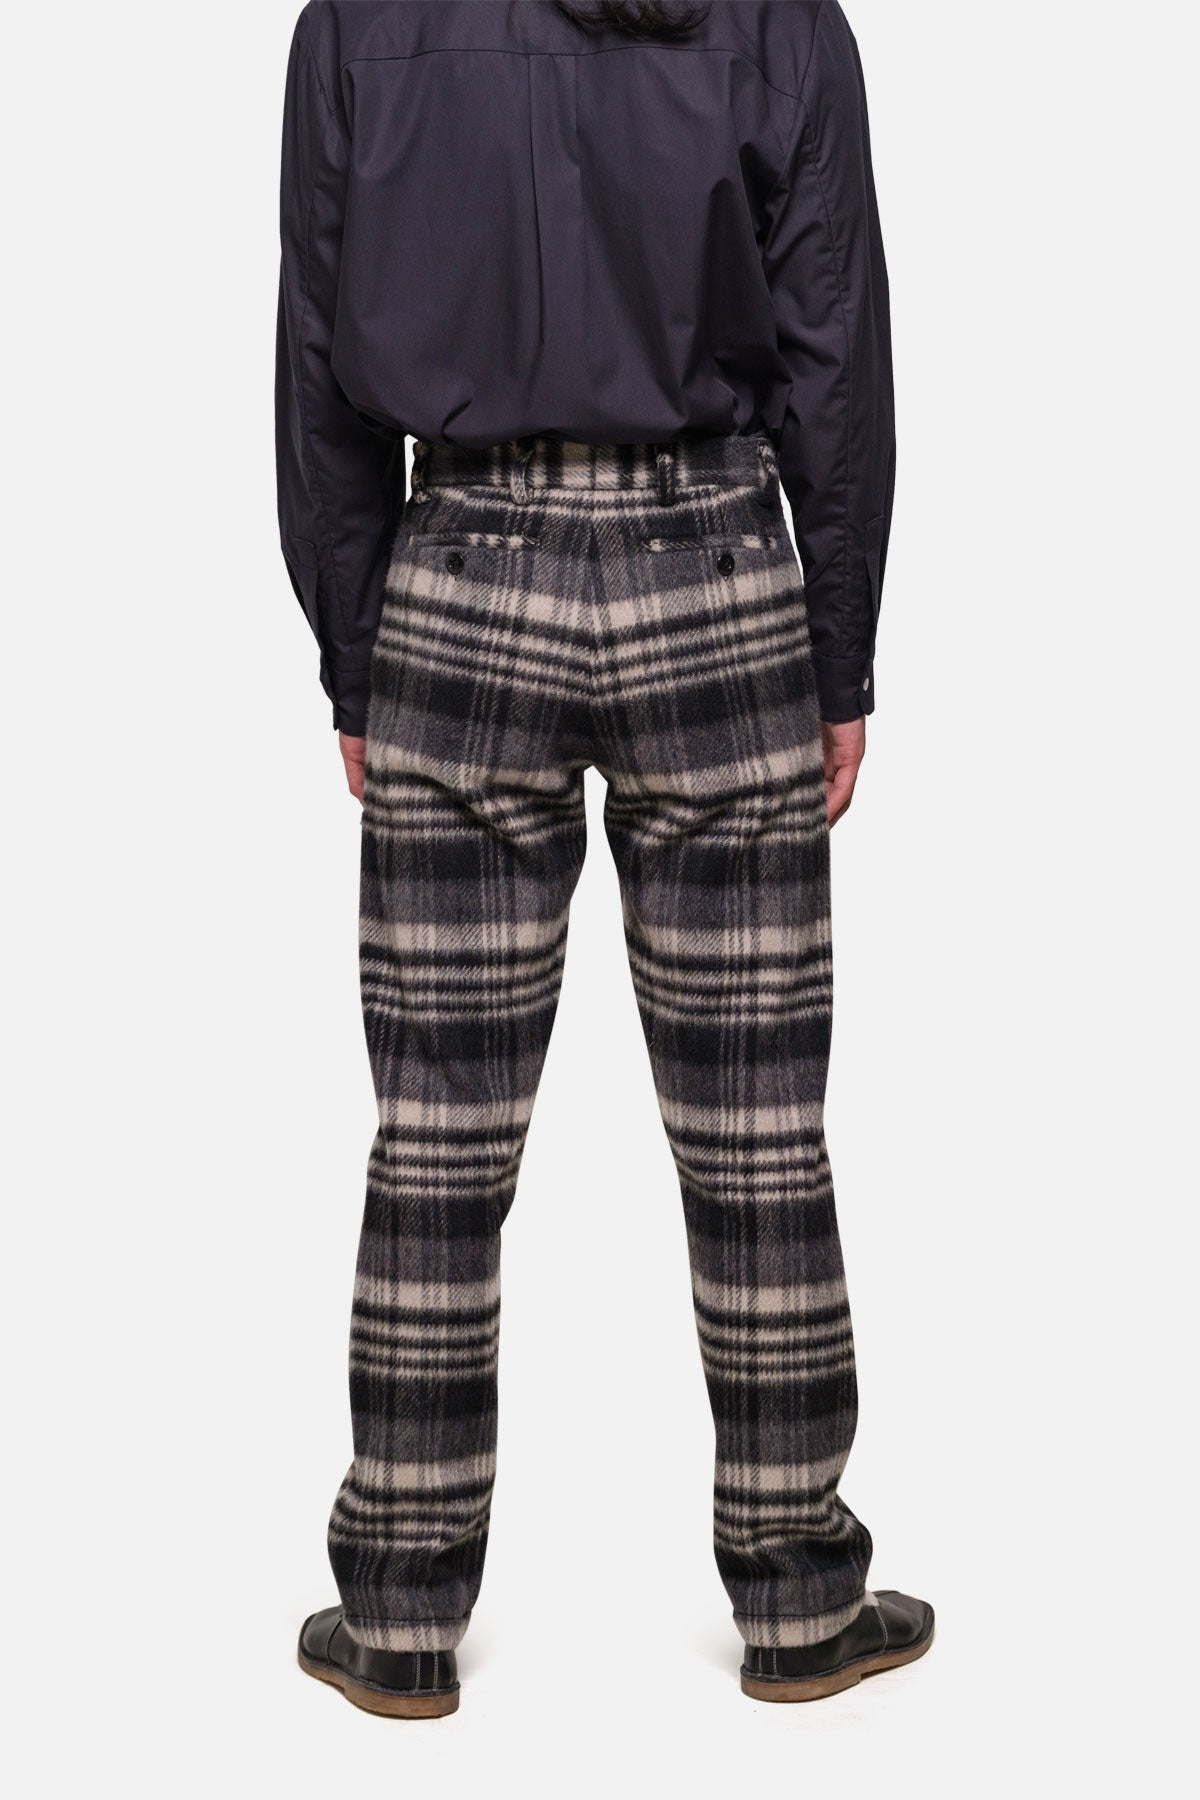 BRIGGS TROUSER IN GREY/BLACK WOOL PILE PLAID - Fortune Goods